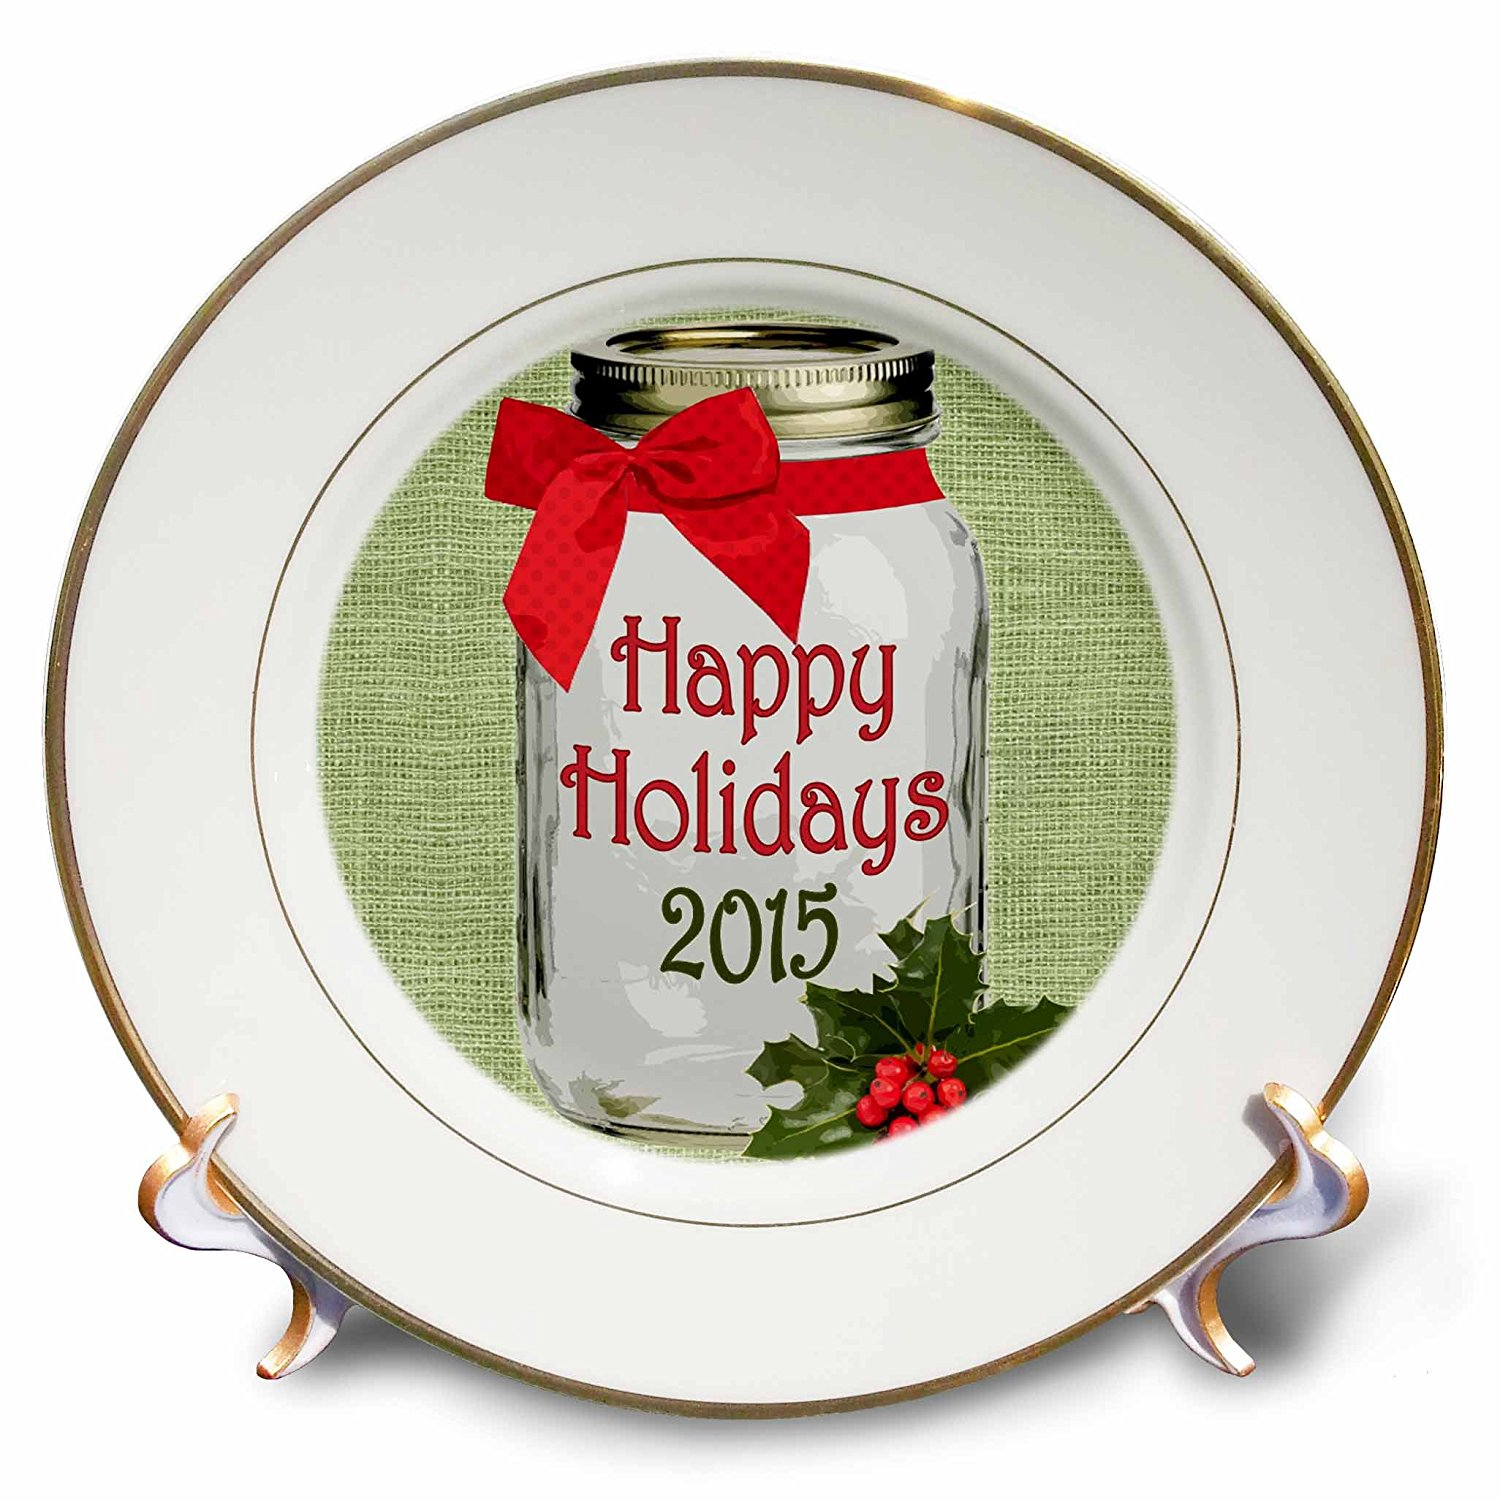 Janna Salak Designs Rustic Designs - Mason Jar Country Happy Holidays with Bow and Holly 2015 - 8 inch Porcelain Plate (cp_165878_1)